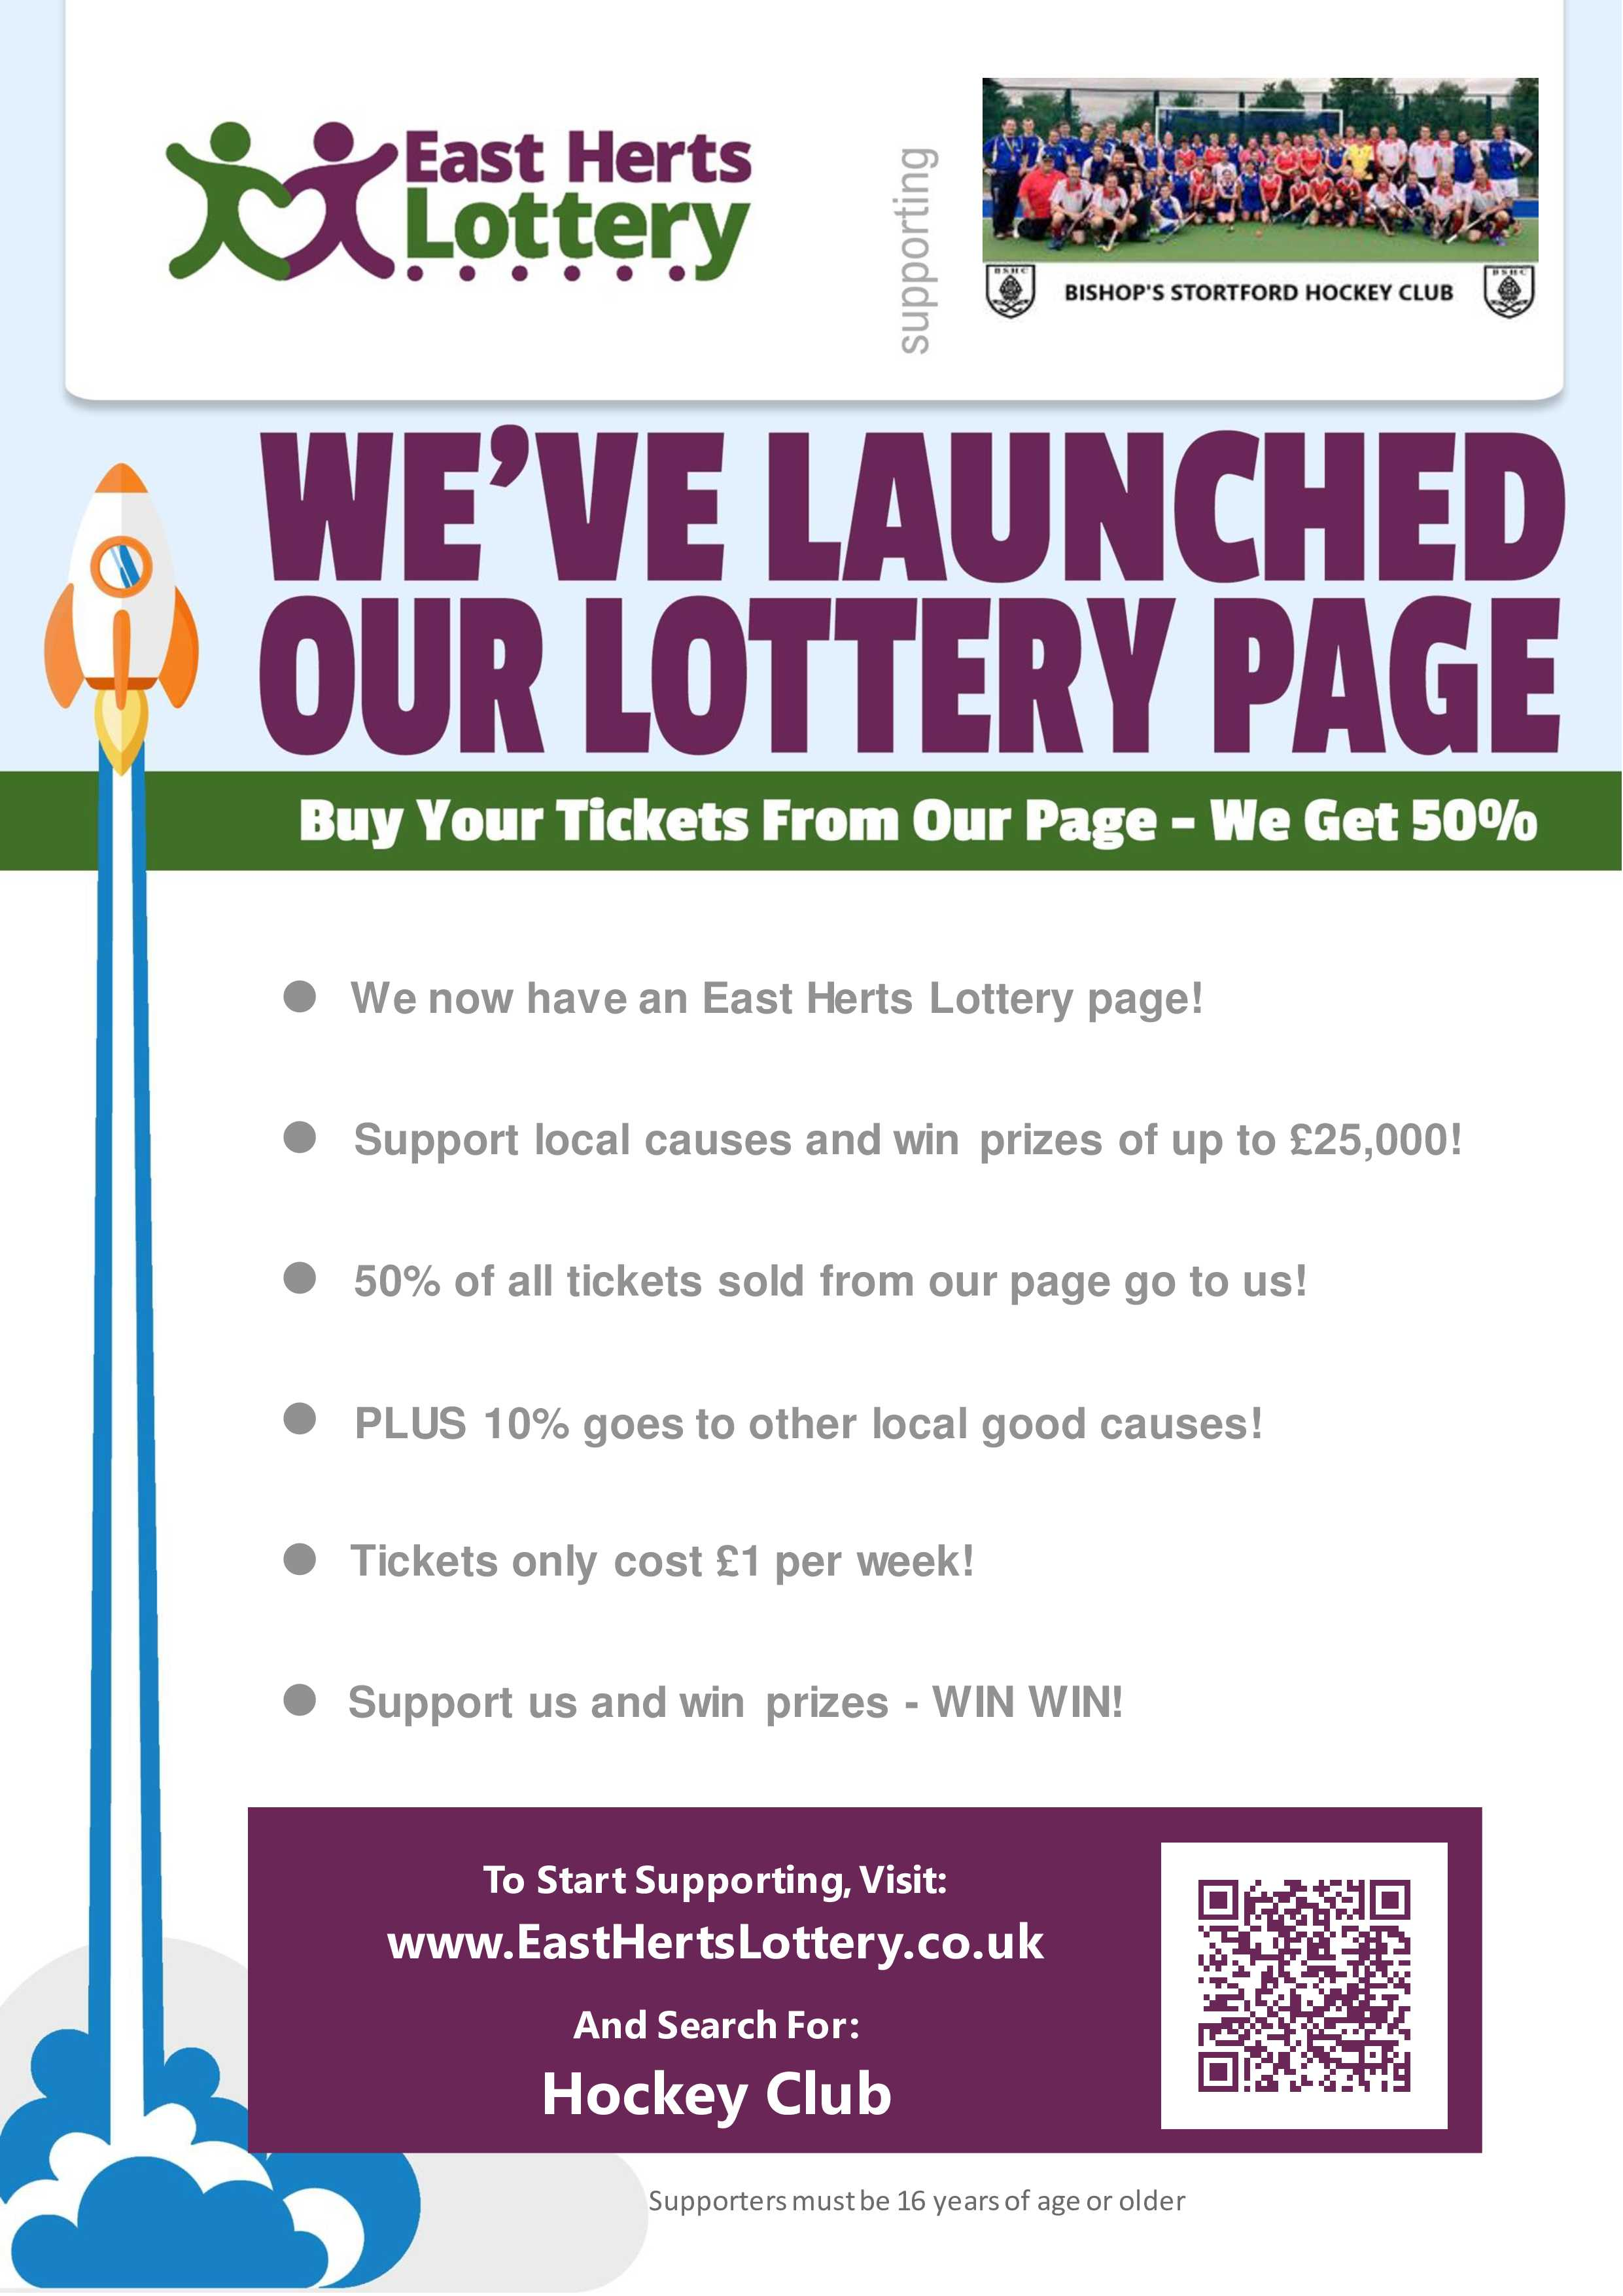 https://www.easthertslottery.co.uk/cause-data/d89bed36-173f-4fb9-adde-3cc226a3be96/leaflets/be5940c5-2790-4aeb-bde8-8952489c46b8/we-have-launched-on-east-herts-lottery%20-%20image.jpg?updated=636836836461200000